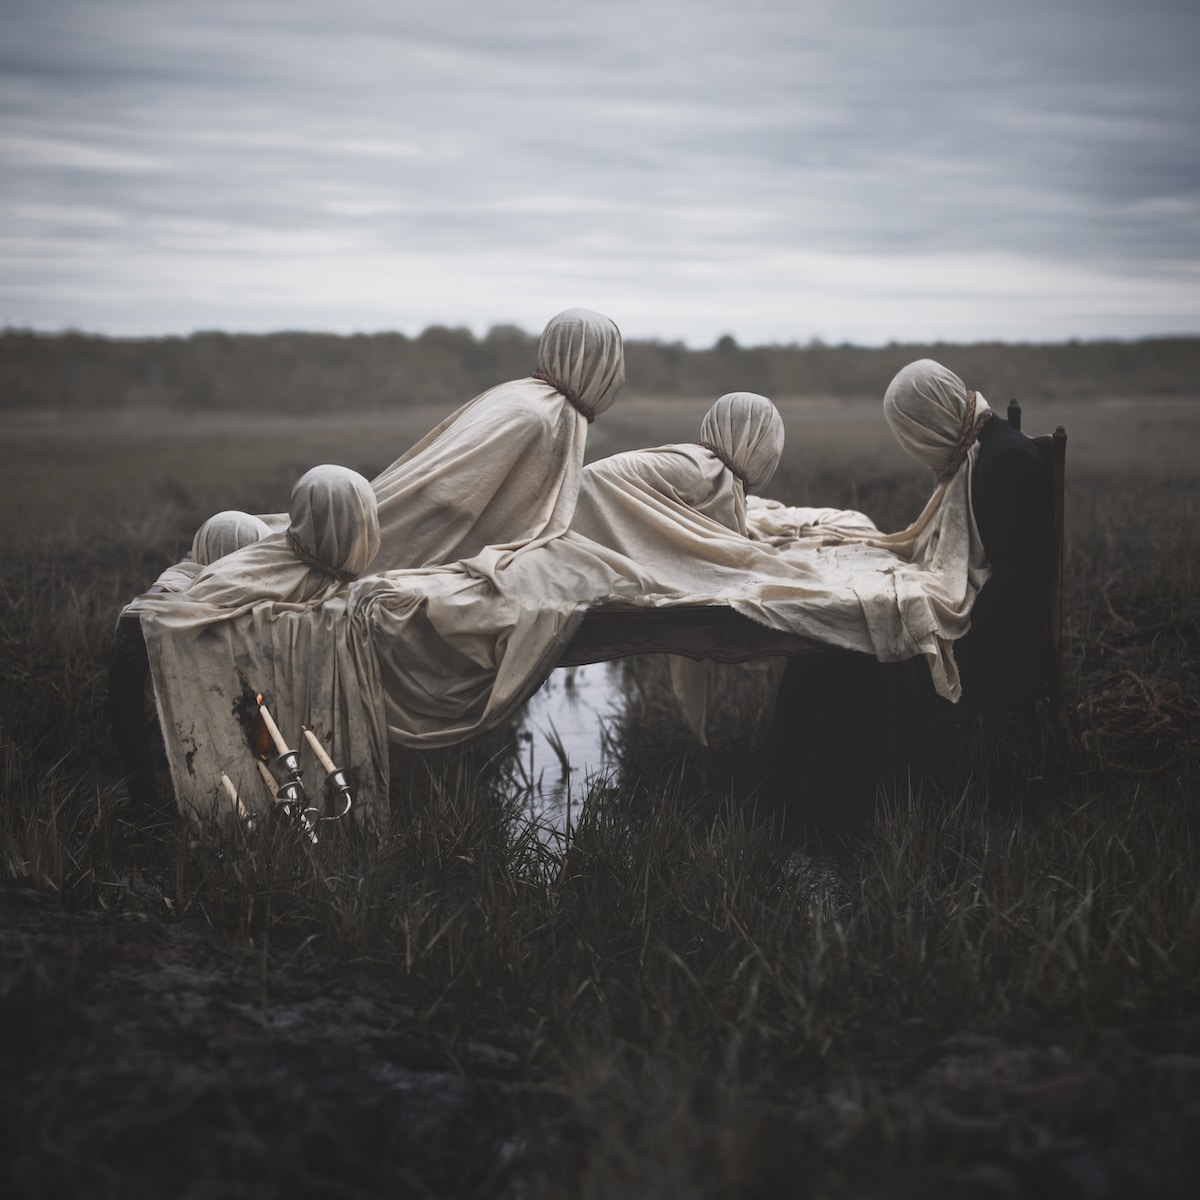 Sleep Paralysis Photography by Nicolas Bruno